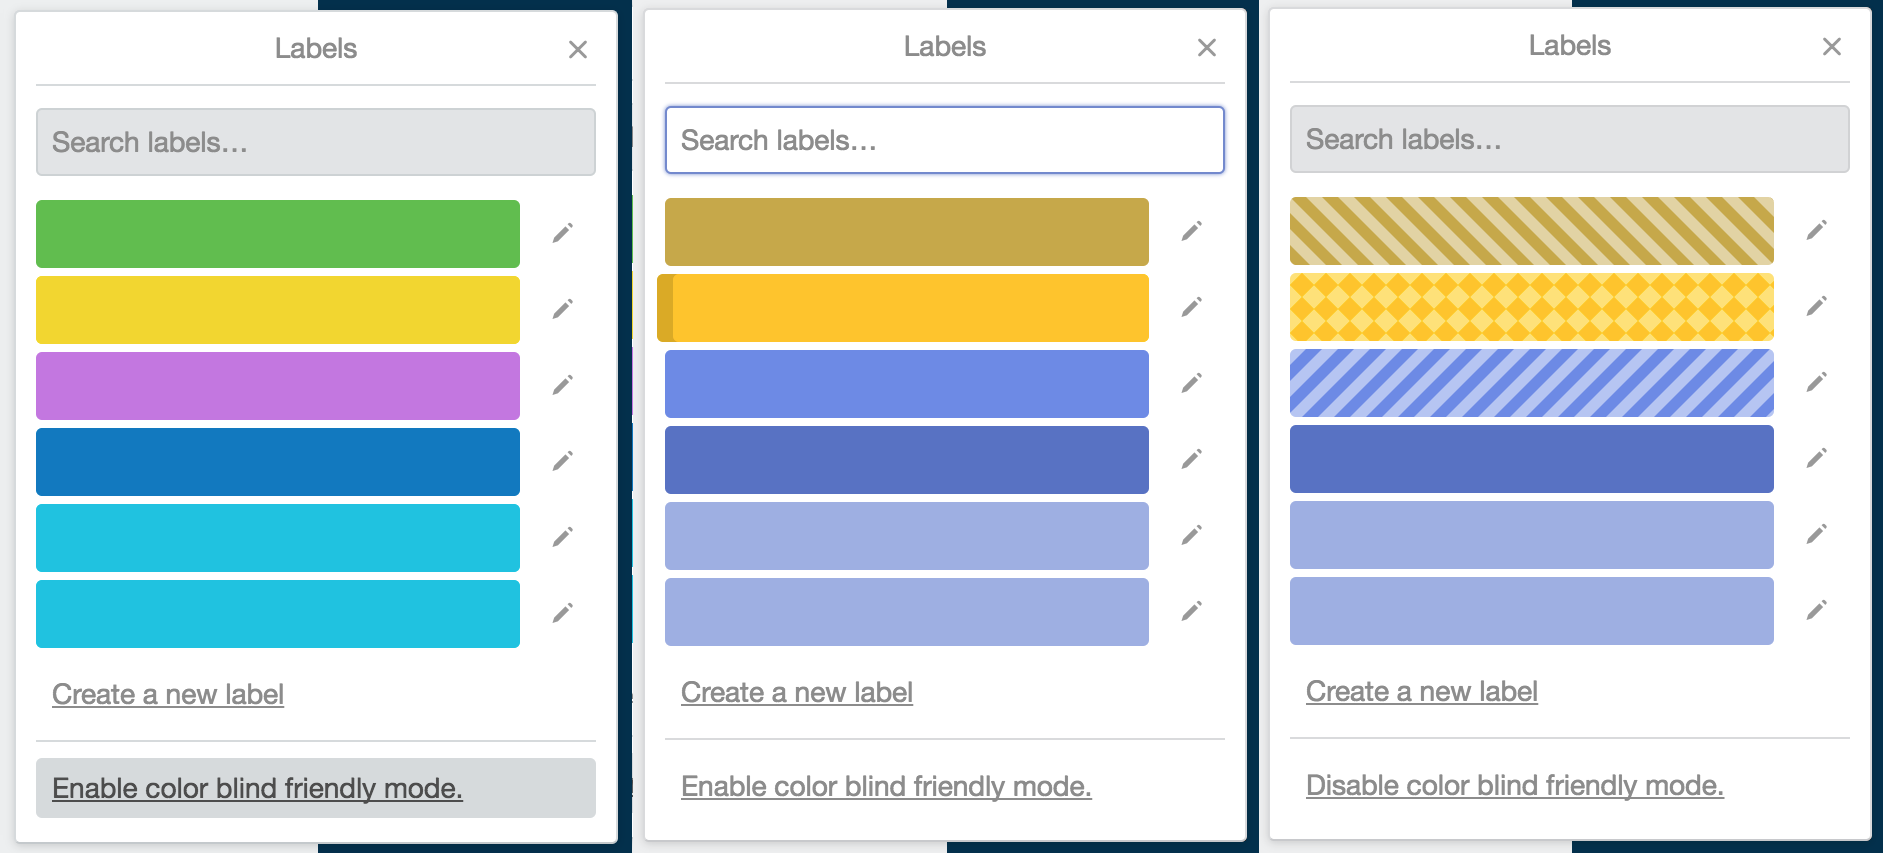 Trello labels as a color blind